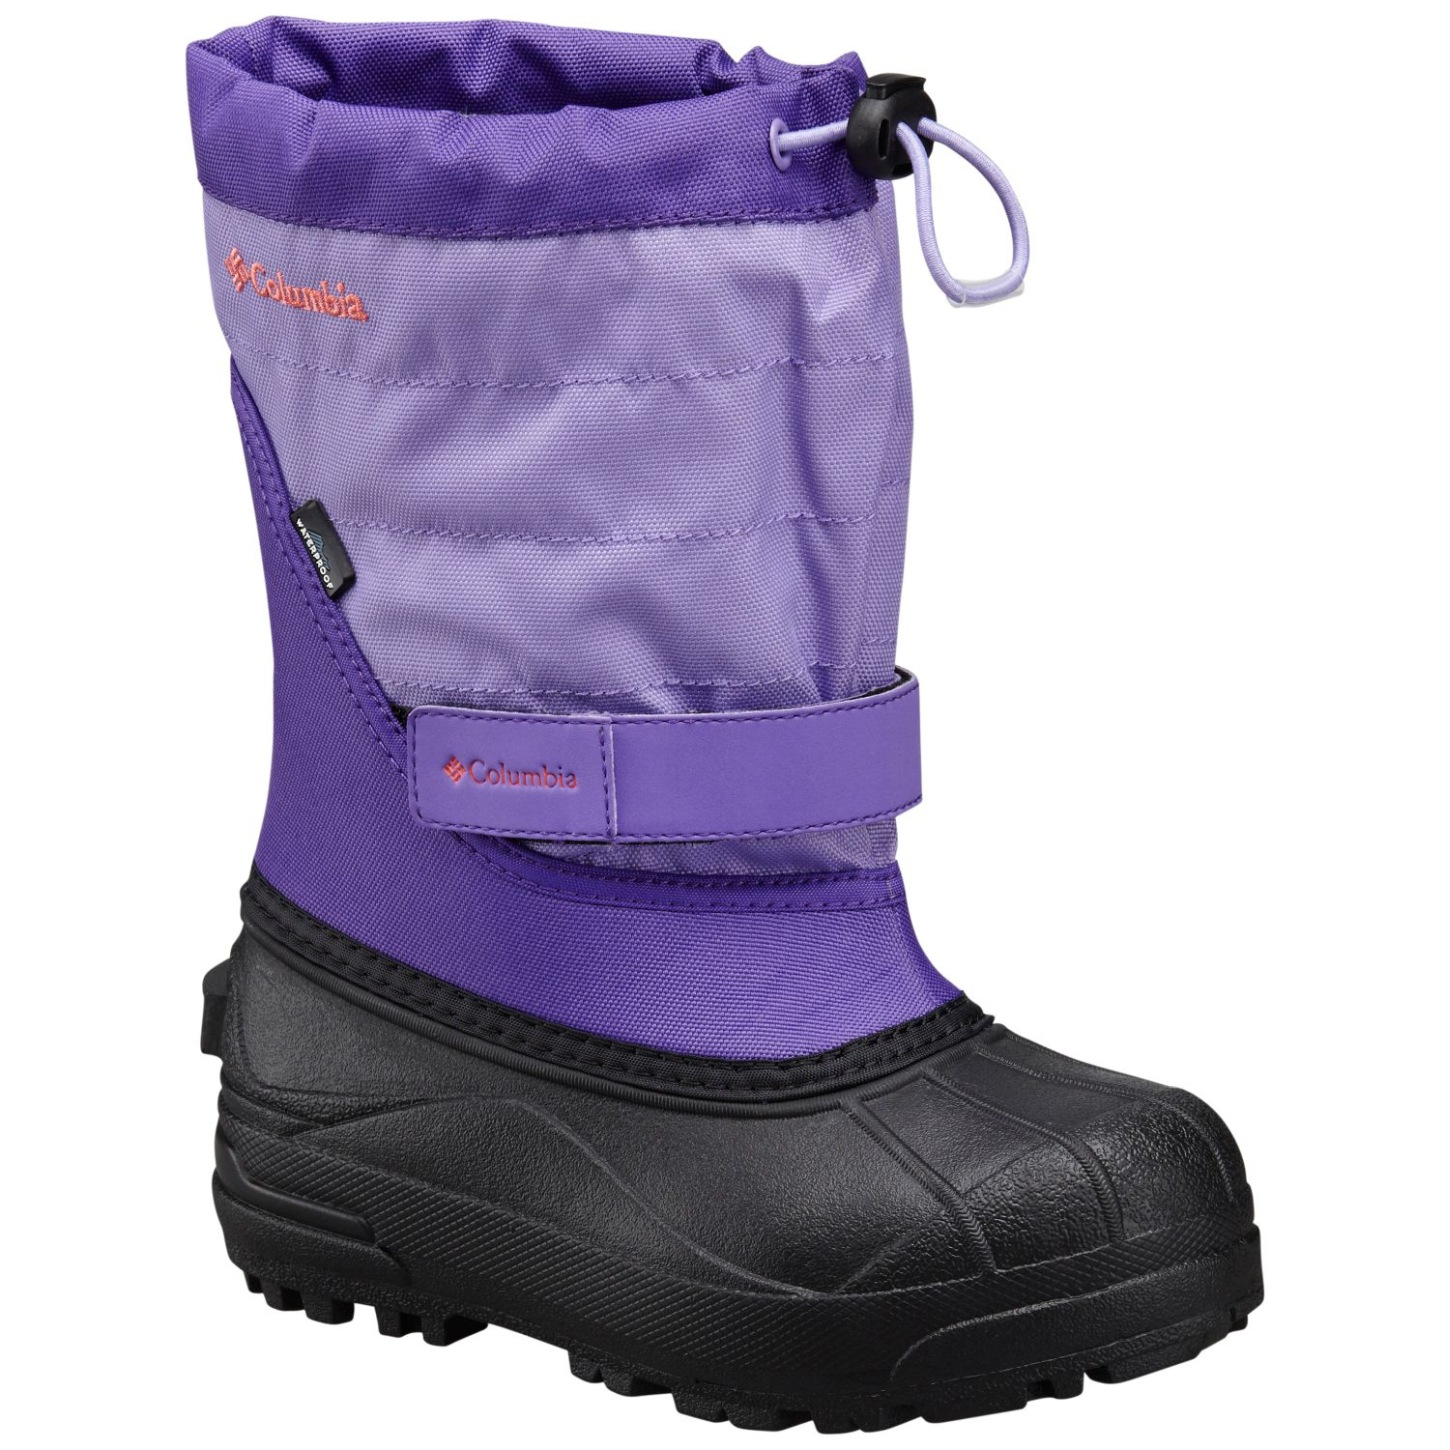 Columbia Girls' Powderbug Plus II Snow Boot Emperor, Melonade-30